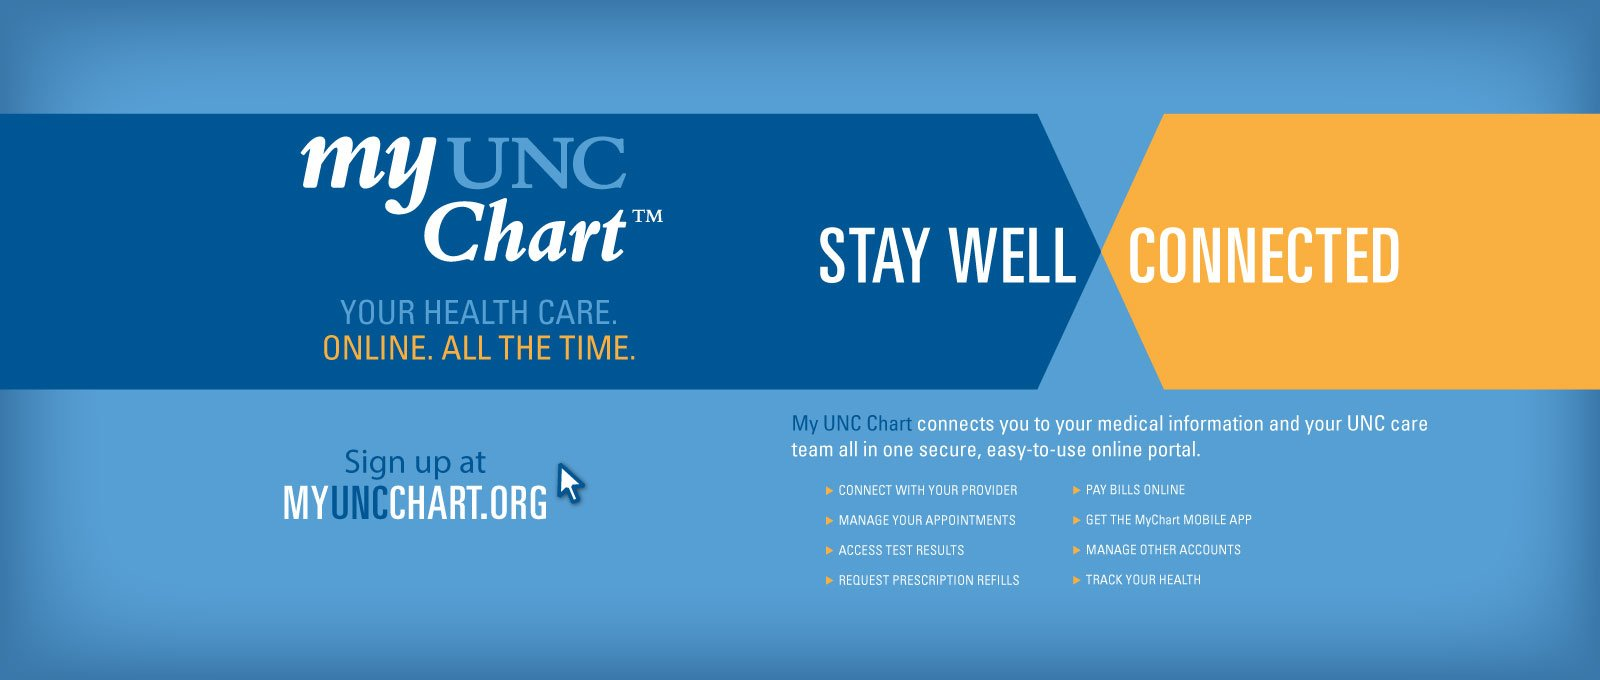 UNC REX Healthcare - Raleigh, NC